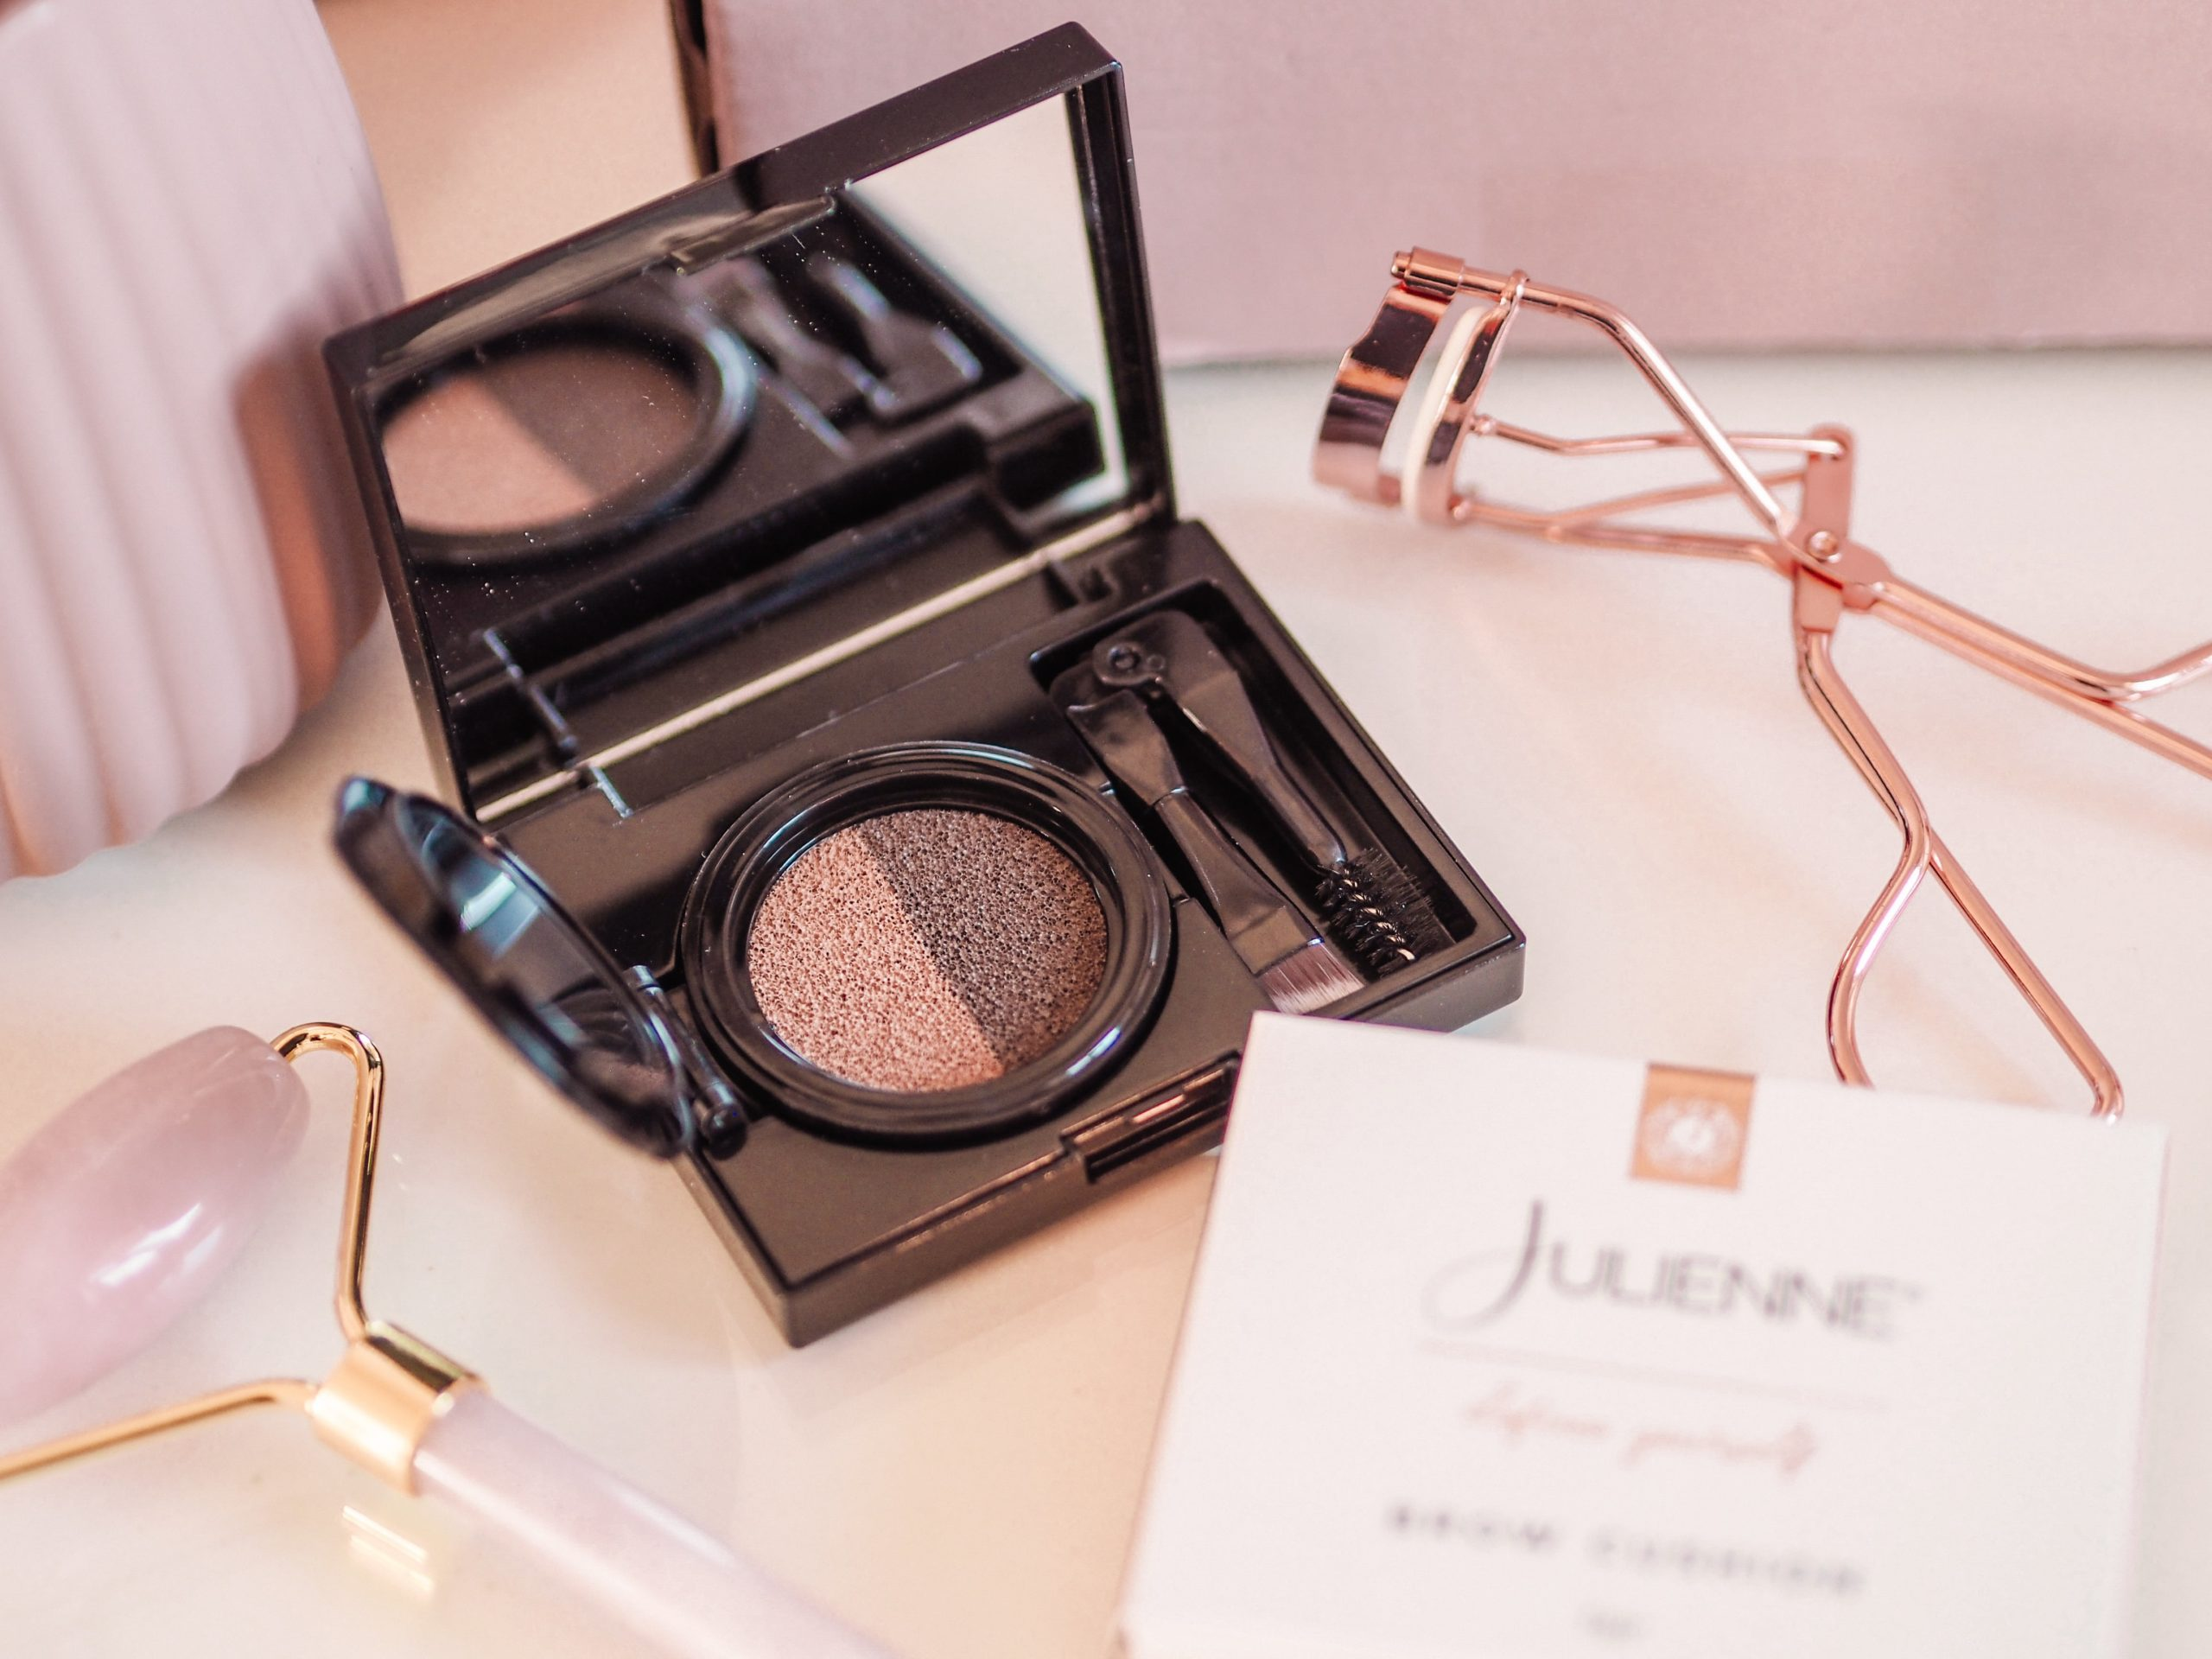 My Julienne Brow Cushion